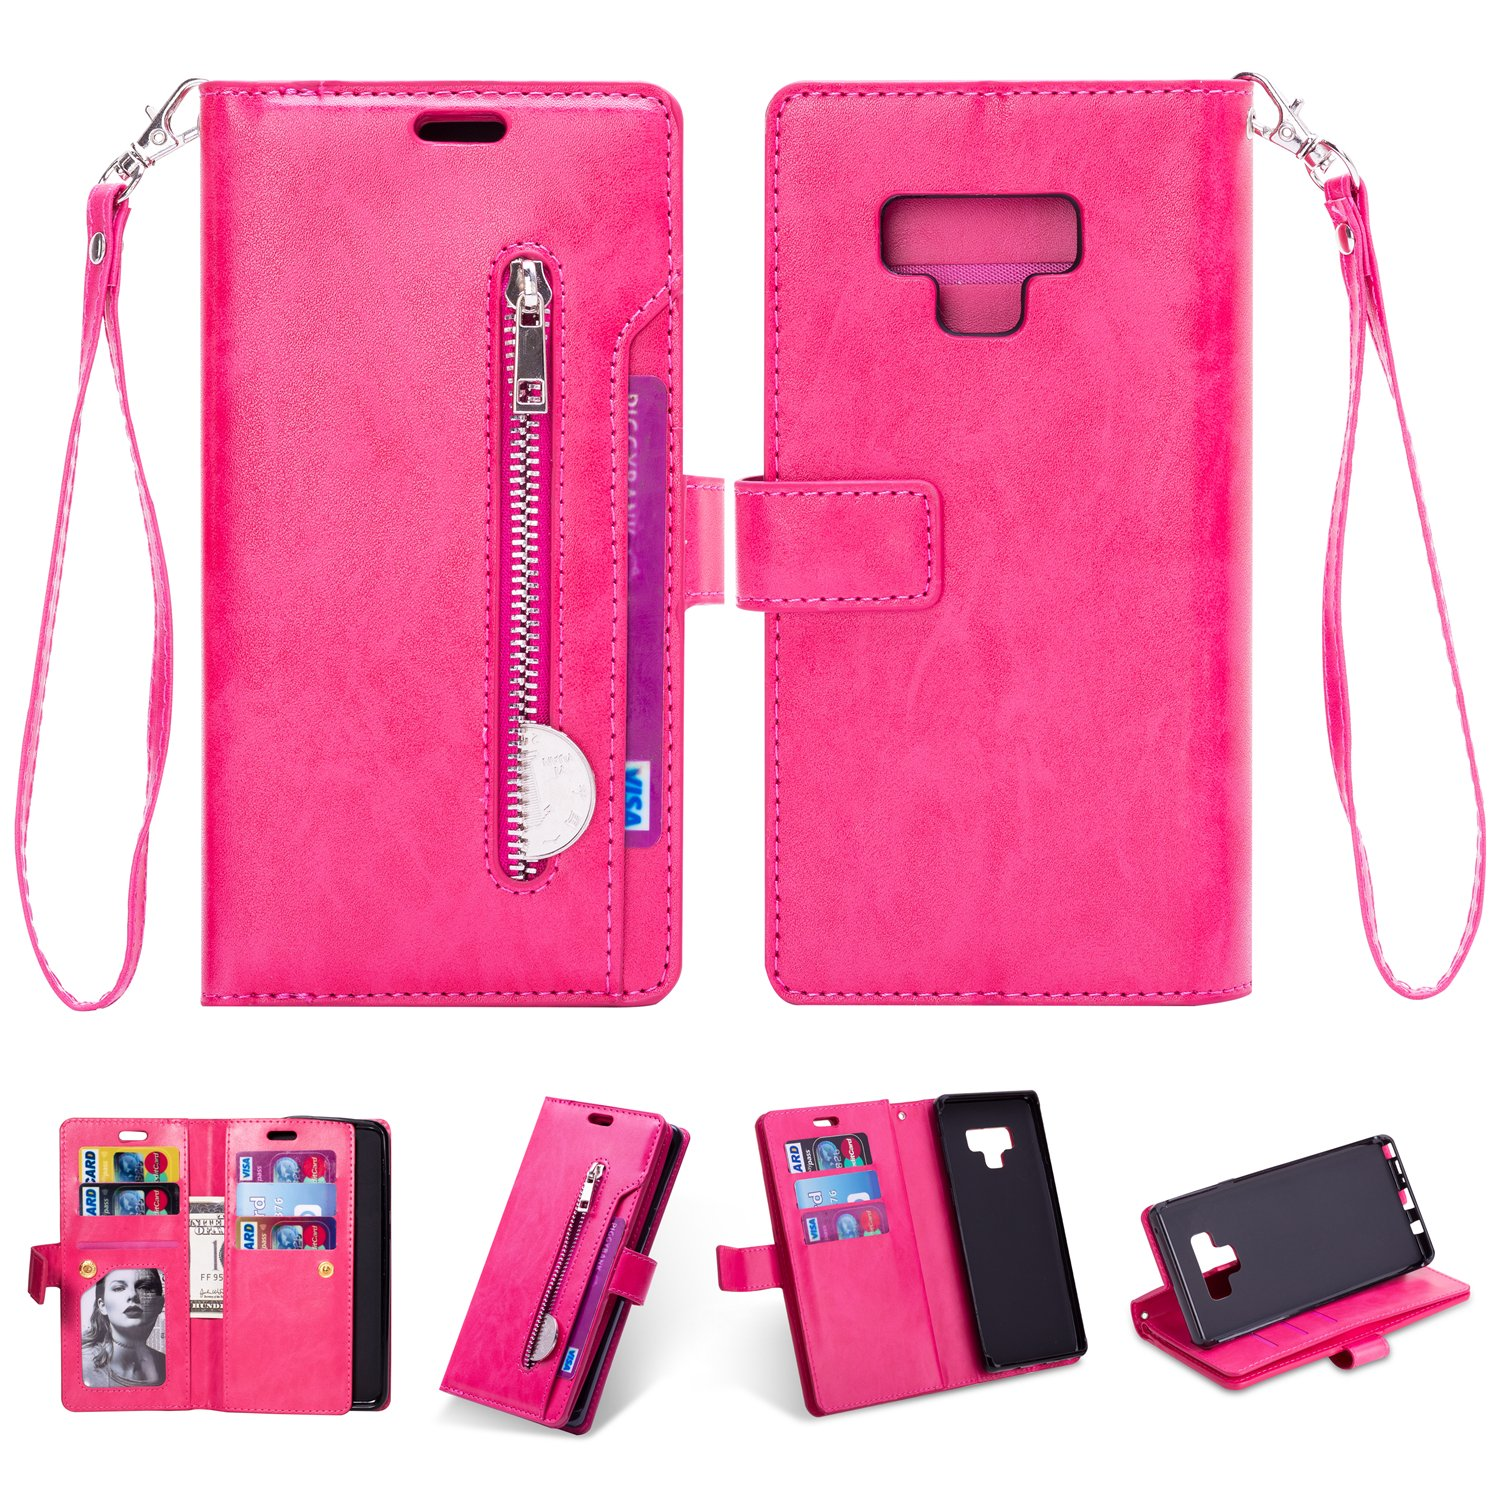 Samsung Galaxy Note 9 Plus Case Wallet,INorton Premium PU Leather Flip Stand Smart Protective Cover with Card Slots for Samsung Galaxy Note 9